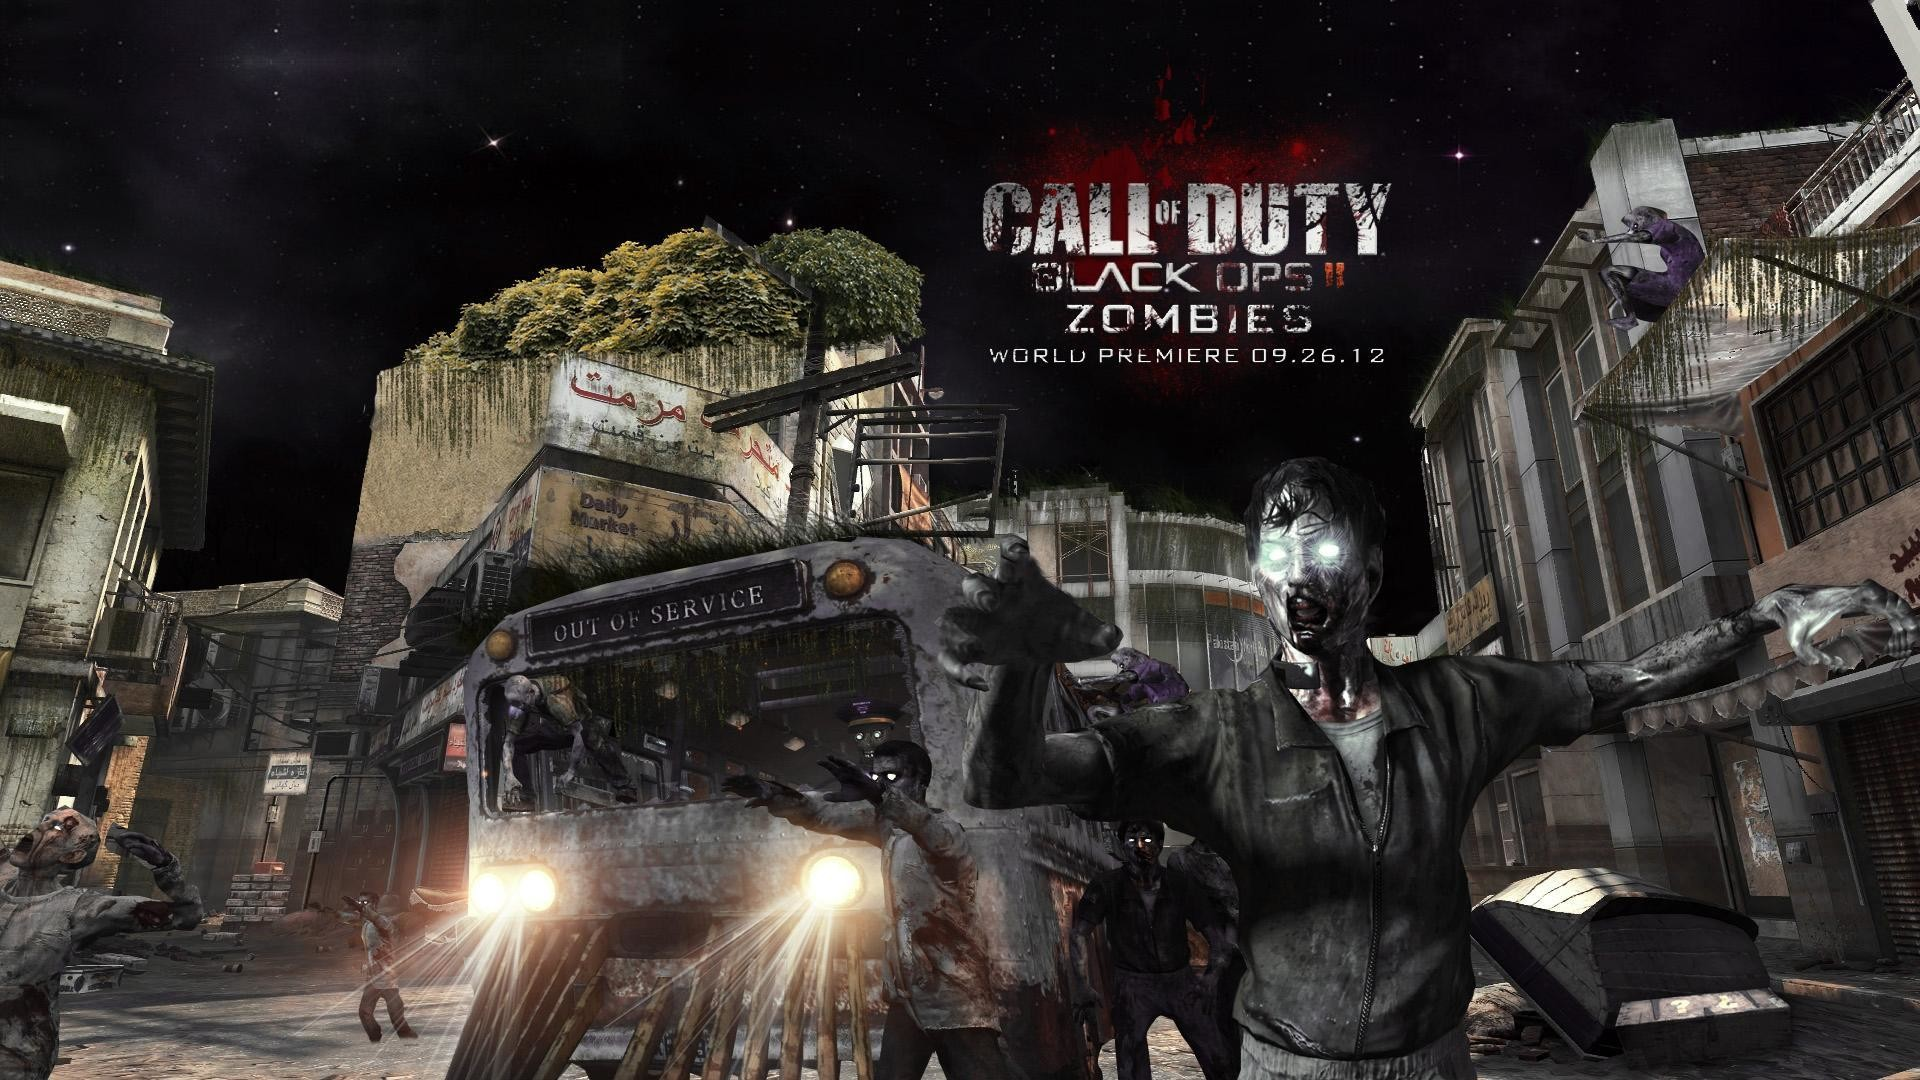 Call Of Duty Wallpapers Zombies Wallpapers) – HD Wallpapers